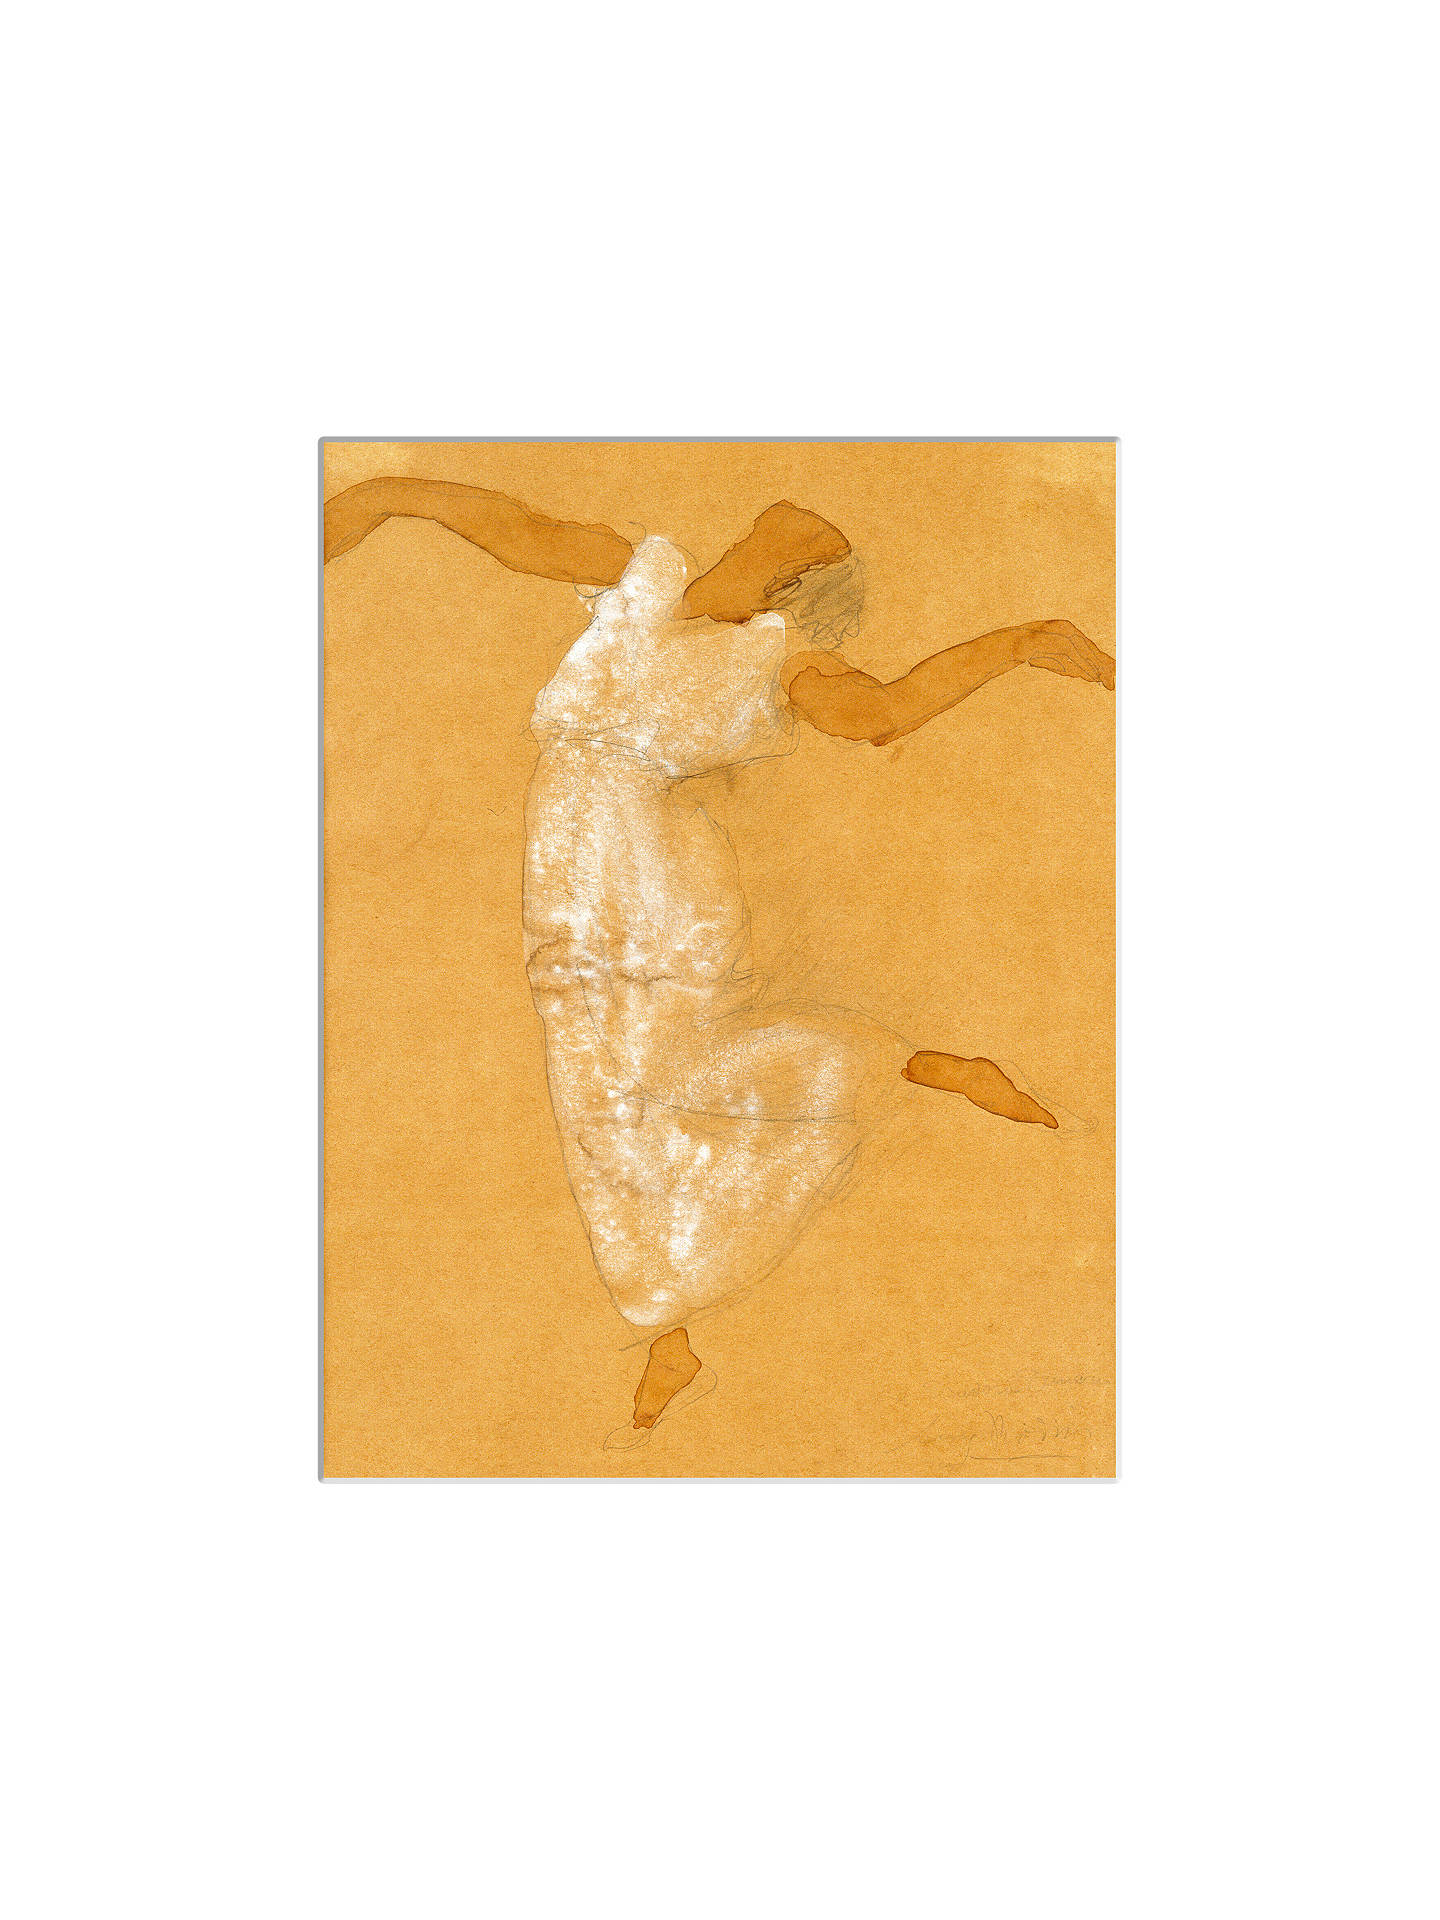 Buy Auguste Rodin - Isadora Duncan Unframed Print with Mount, 40 x 30cm Online at johnlewis.com